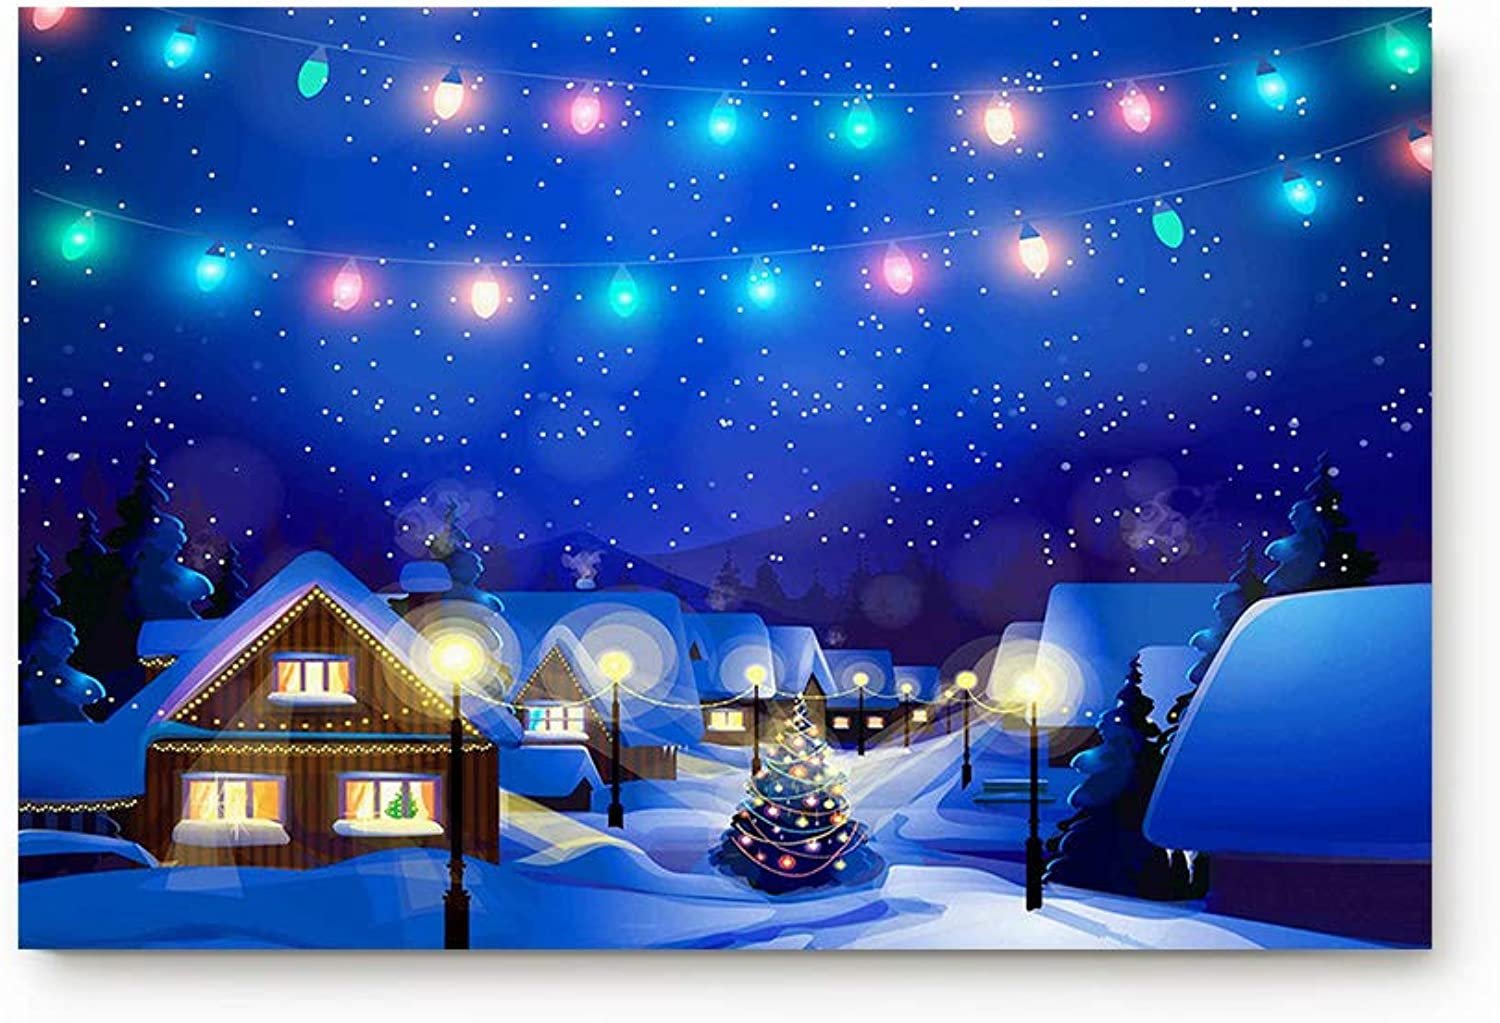 Life808 Office Floor Mats Front Doormats Non-Slip Bedroom Home Kitchen Rug, Christmas Decorate Yard Trees colorful Bulb on Snowy Nature Landscape 20 31.5-Inch